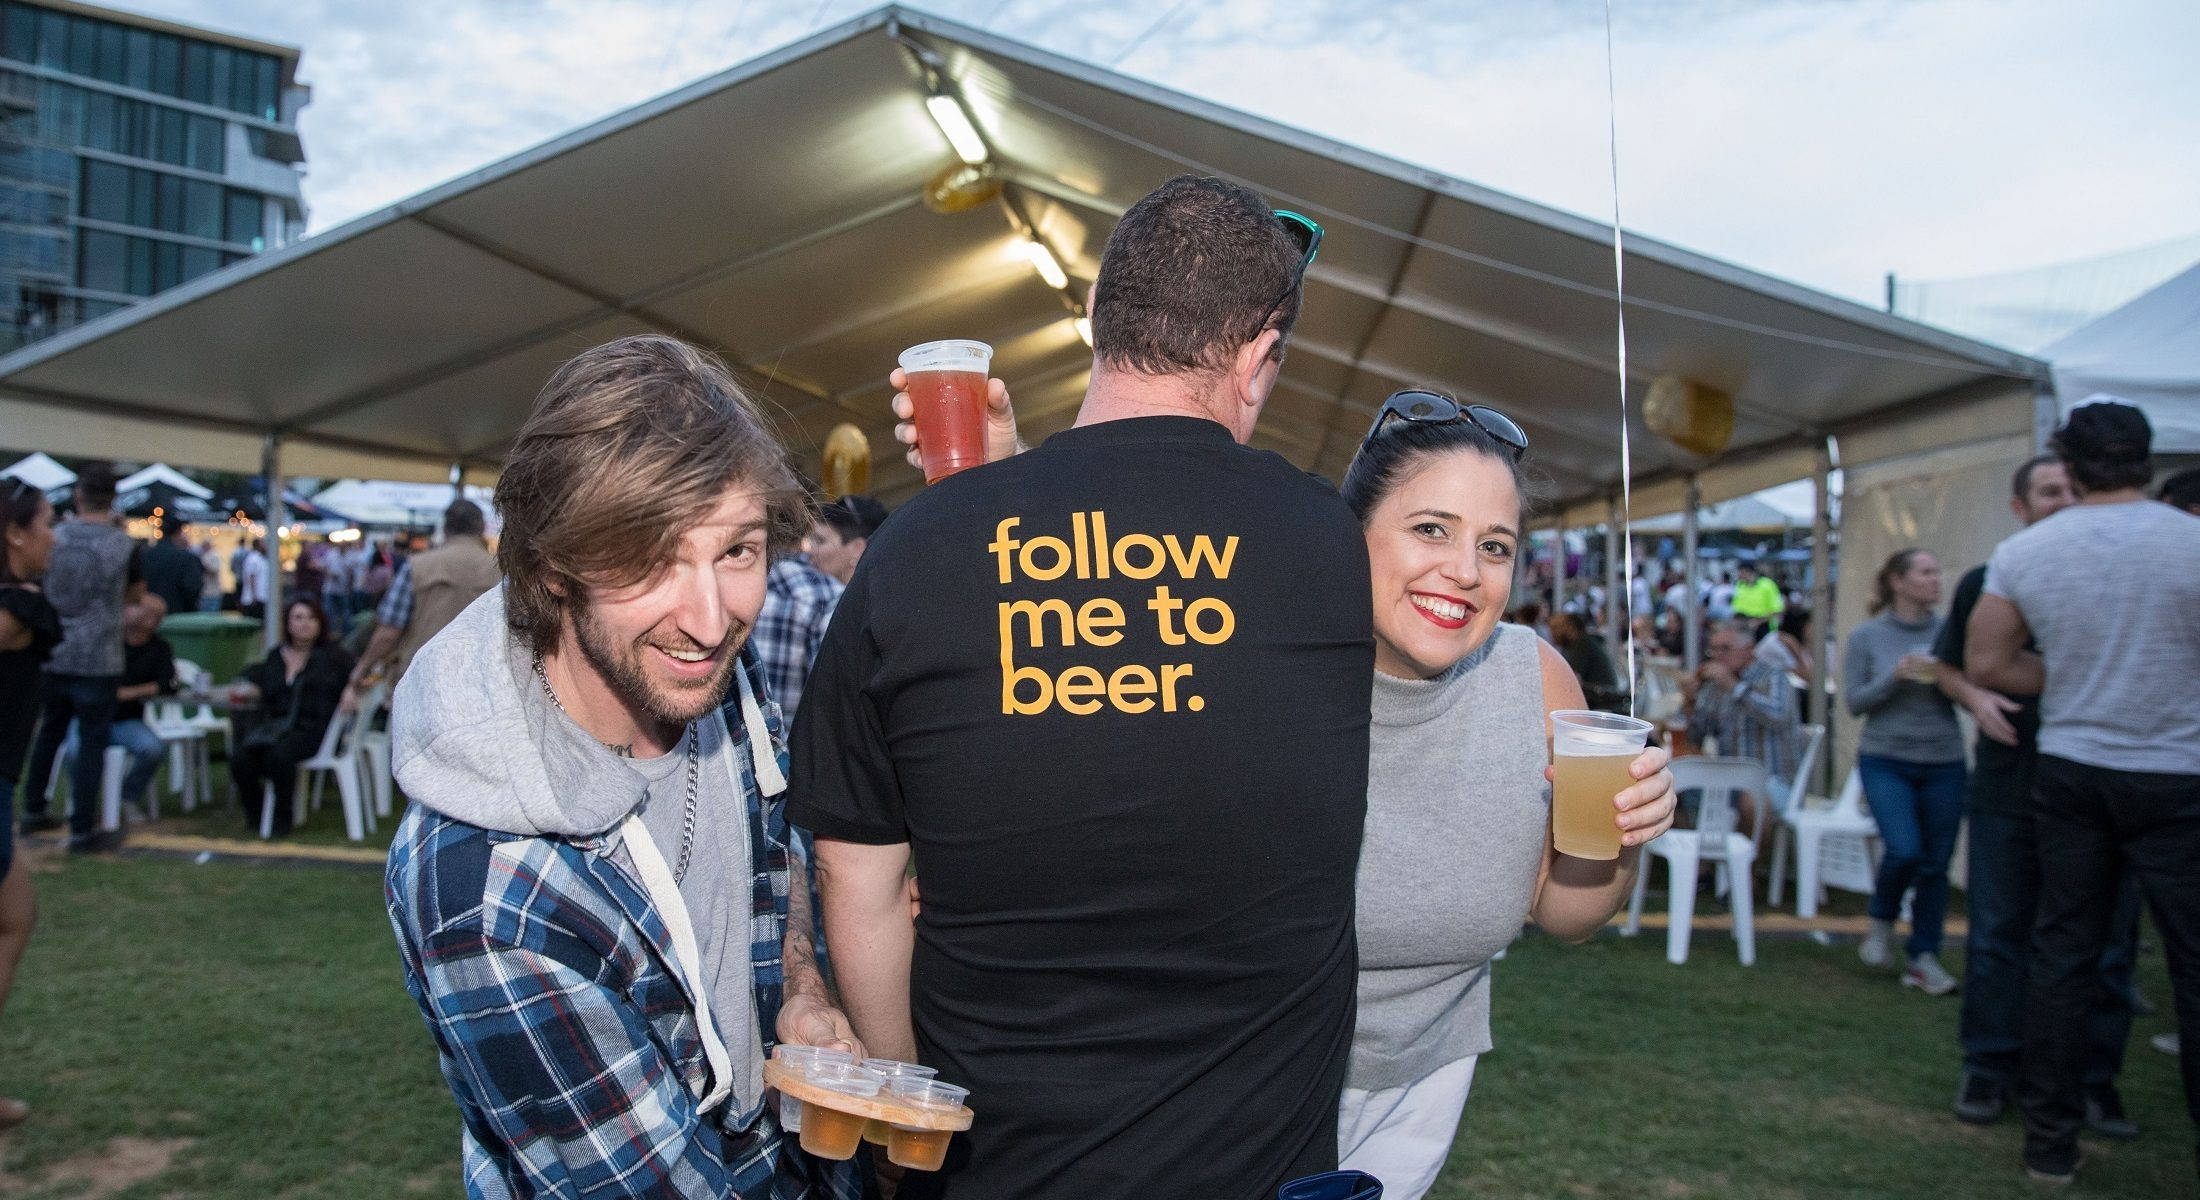 Eatons Hill Beer Fest Shirt Moreton Bay Region